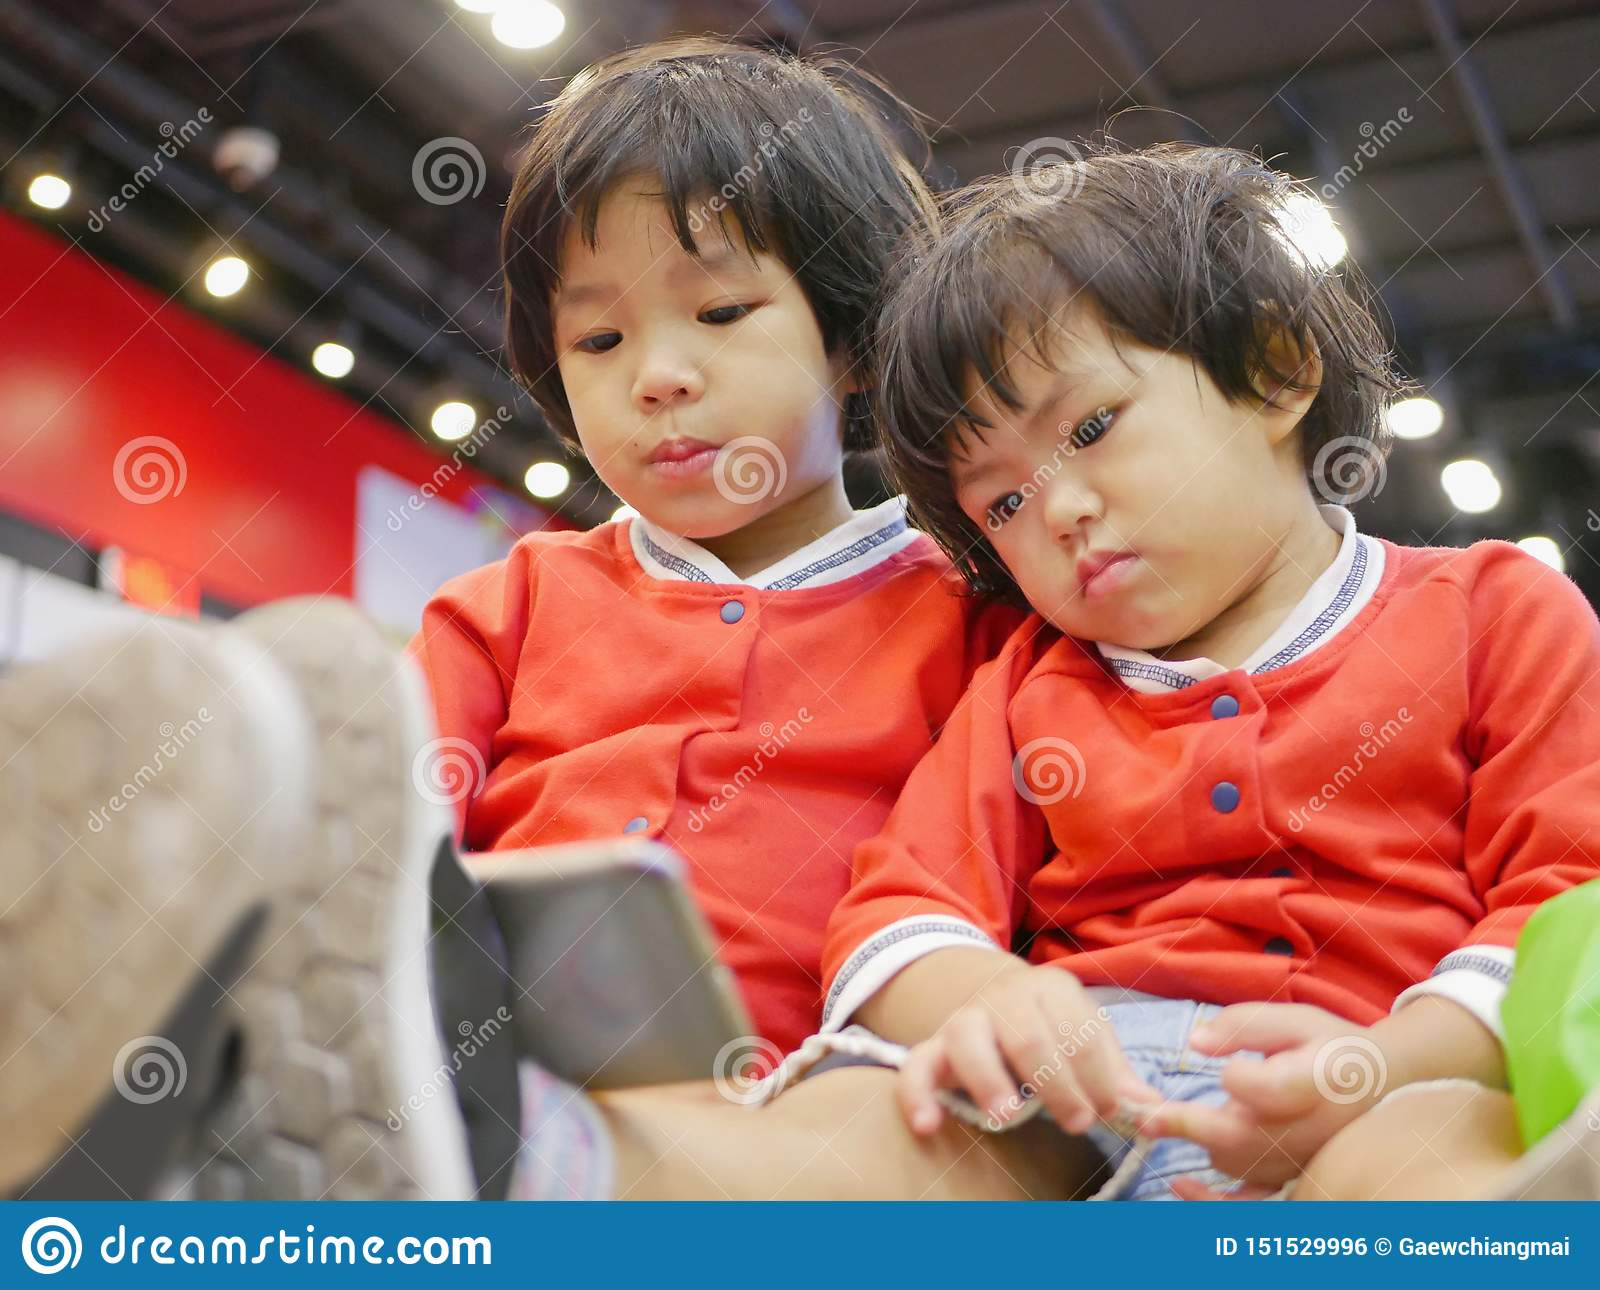 Two little Asian baby girl, sisters, sitting and watching a smartphone together, while waiting for her mother to do some errands